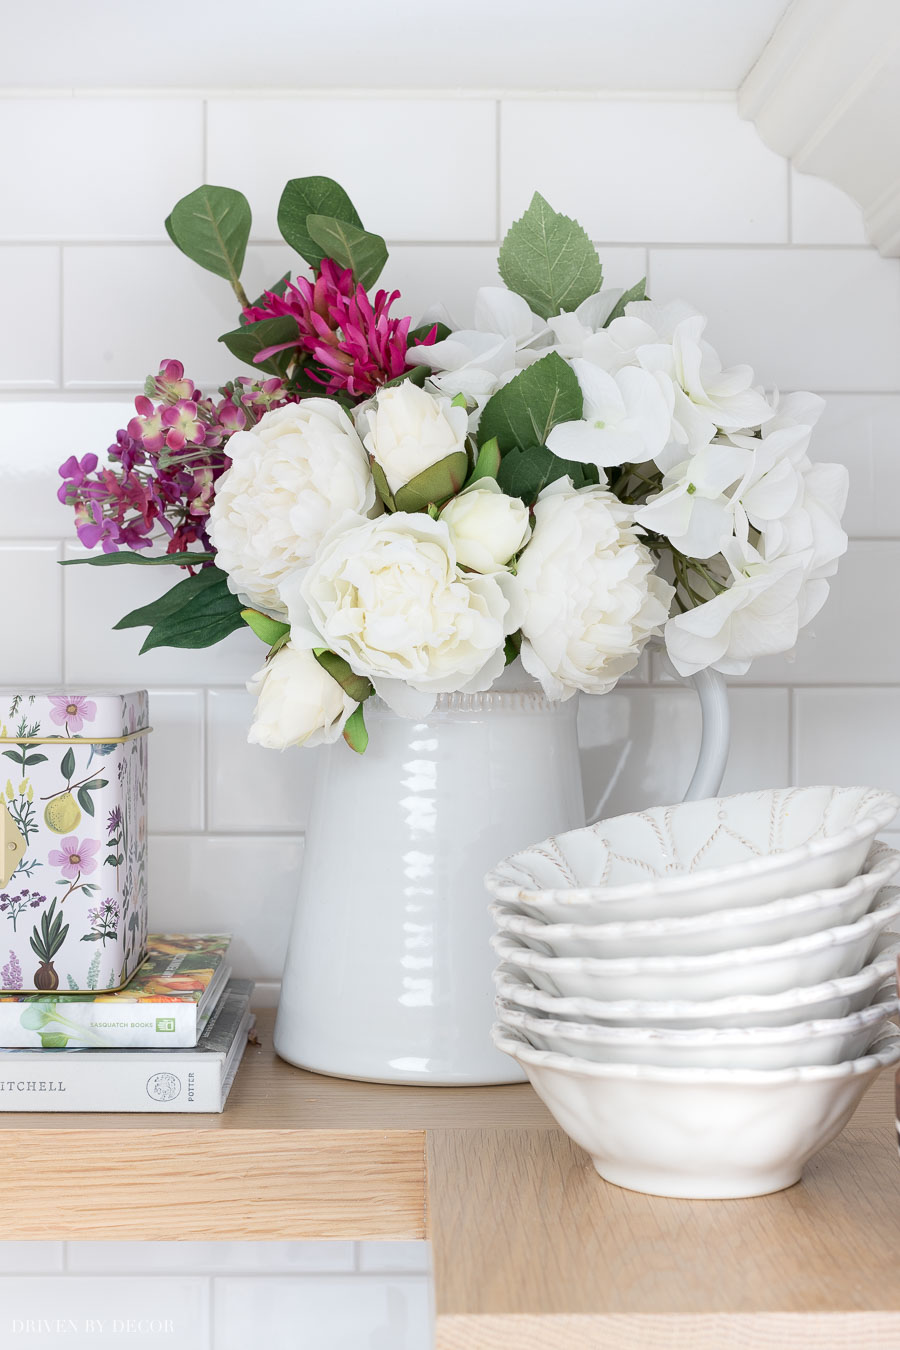 These realistic faux flowers in a pitcher are perfect for dressing up the look of your shelves!